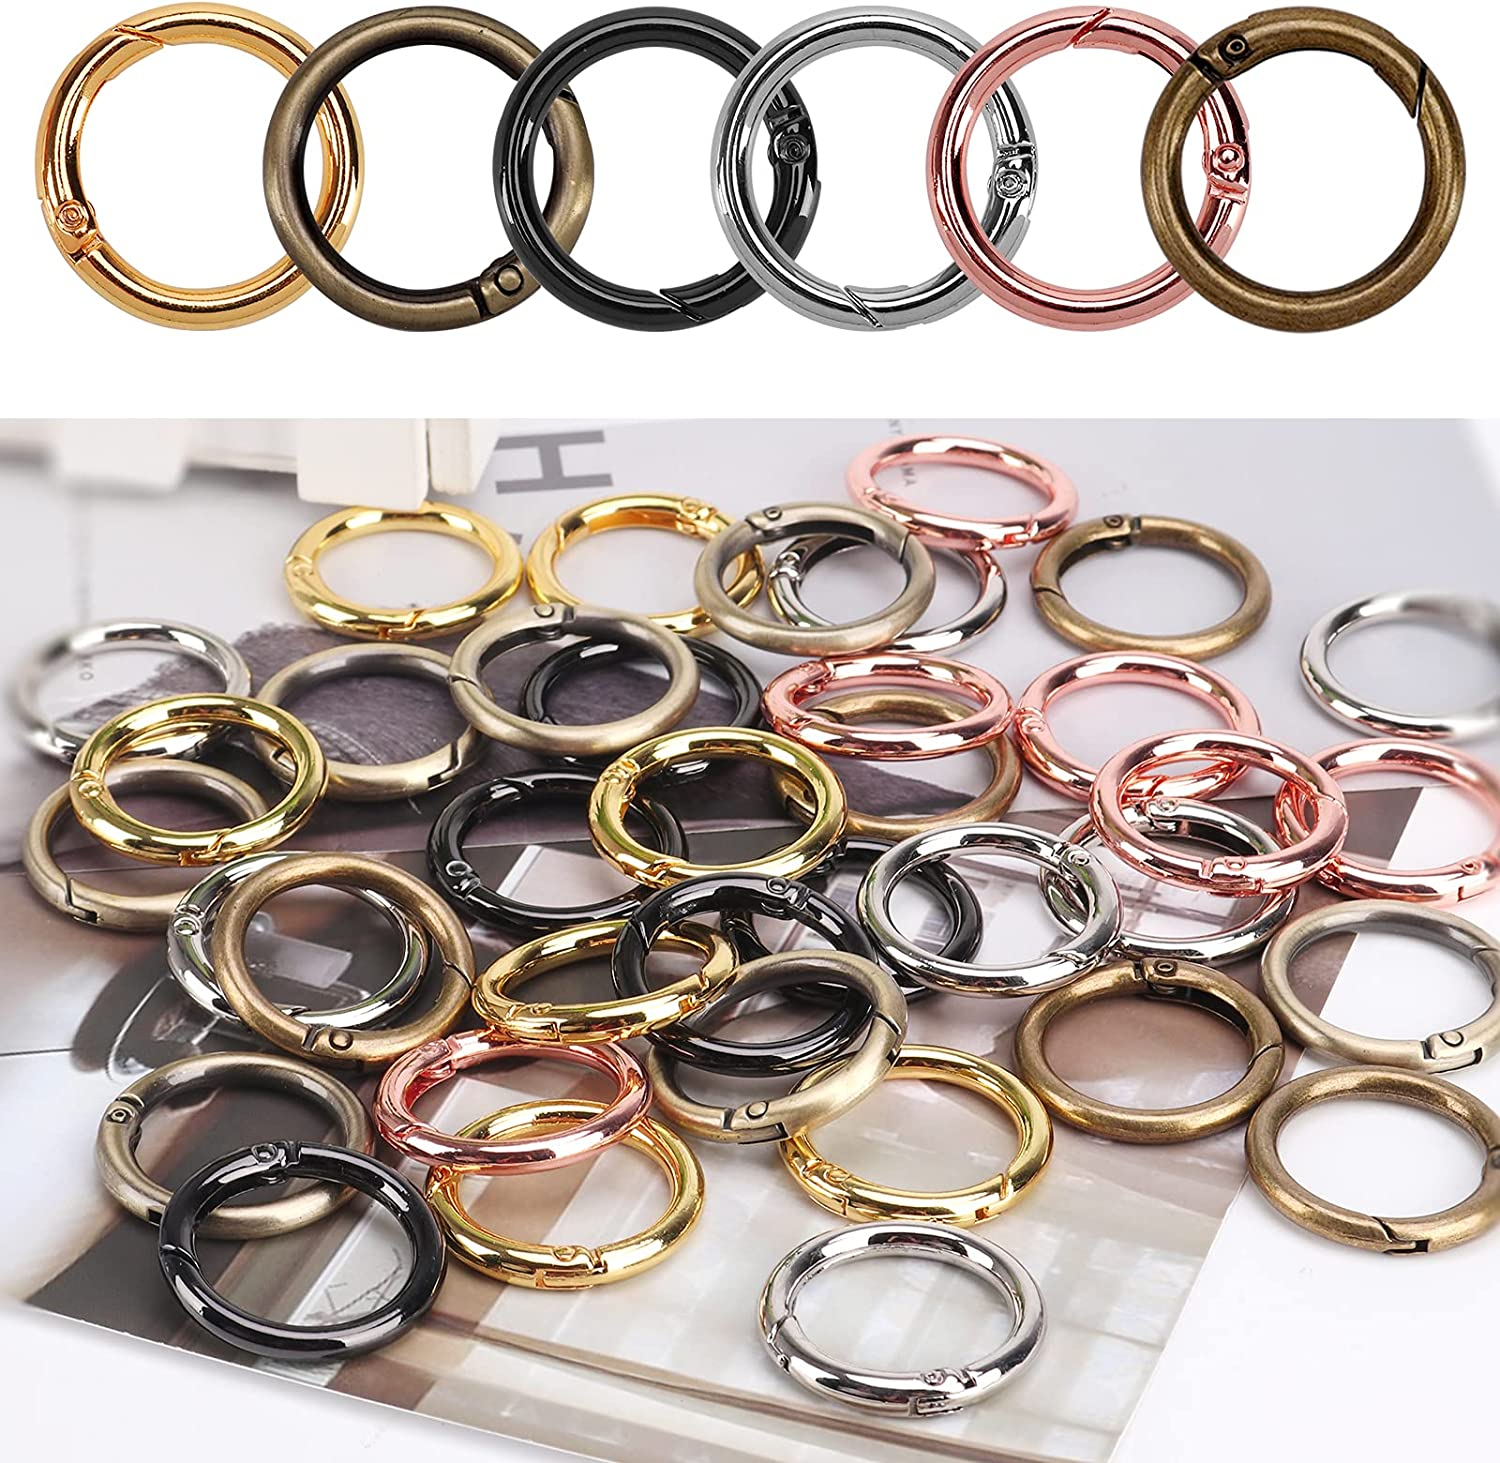 Max 88% OFF O Ring Spring Hooks Clip Set Round Cenoz Carabiner 28mm Recommendation Cli Snap